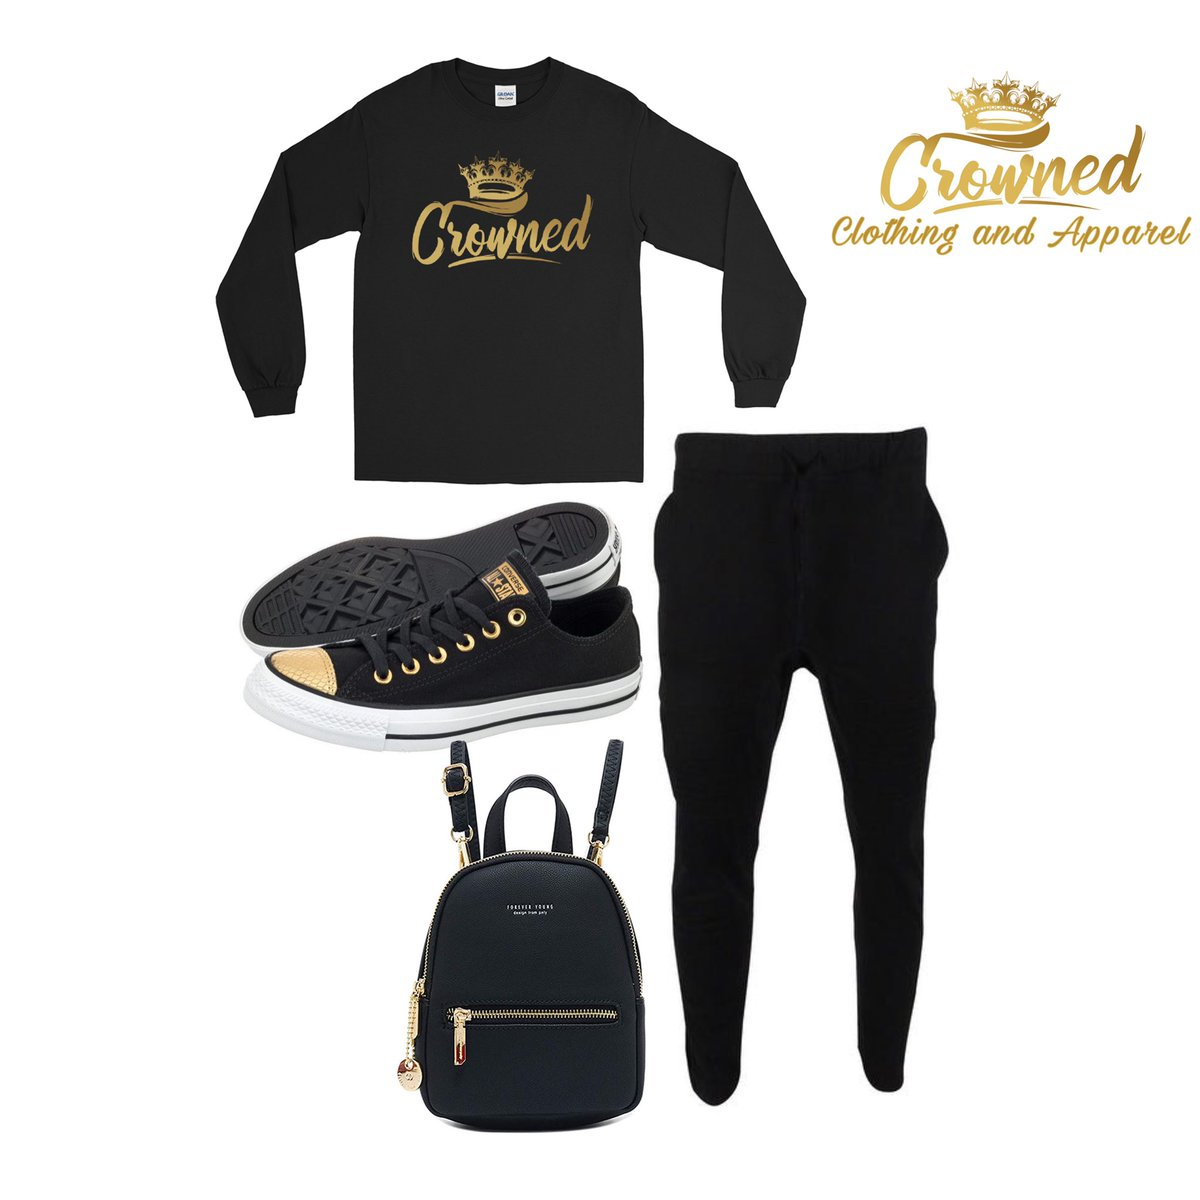 Crowned long sleeves and joggers are a great loungewear outfit for those chill days. . . . . . . #crowned #longsleeveshirt #longsleeve #joggerspants #joggerstyle #joggerspants #blackandgoldoutfit #blackandgold #outfitinspiration #loungewear #luxuryloungewear #loungewearlifestylepic.twitter.com/Z35RXR3V8l